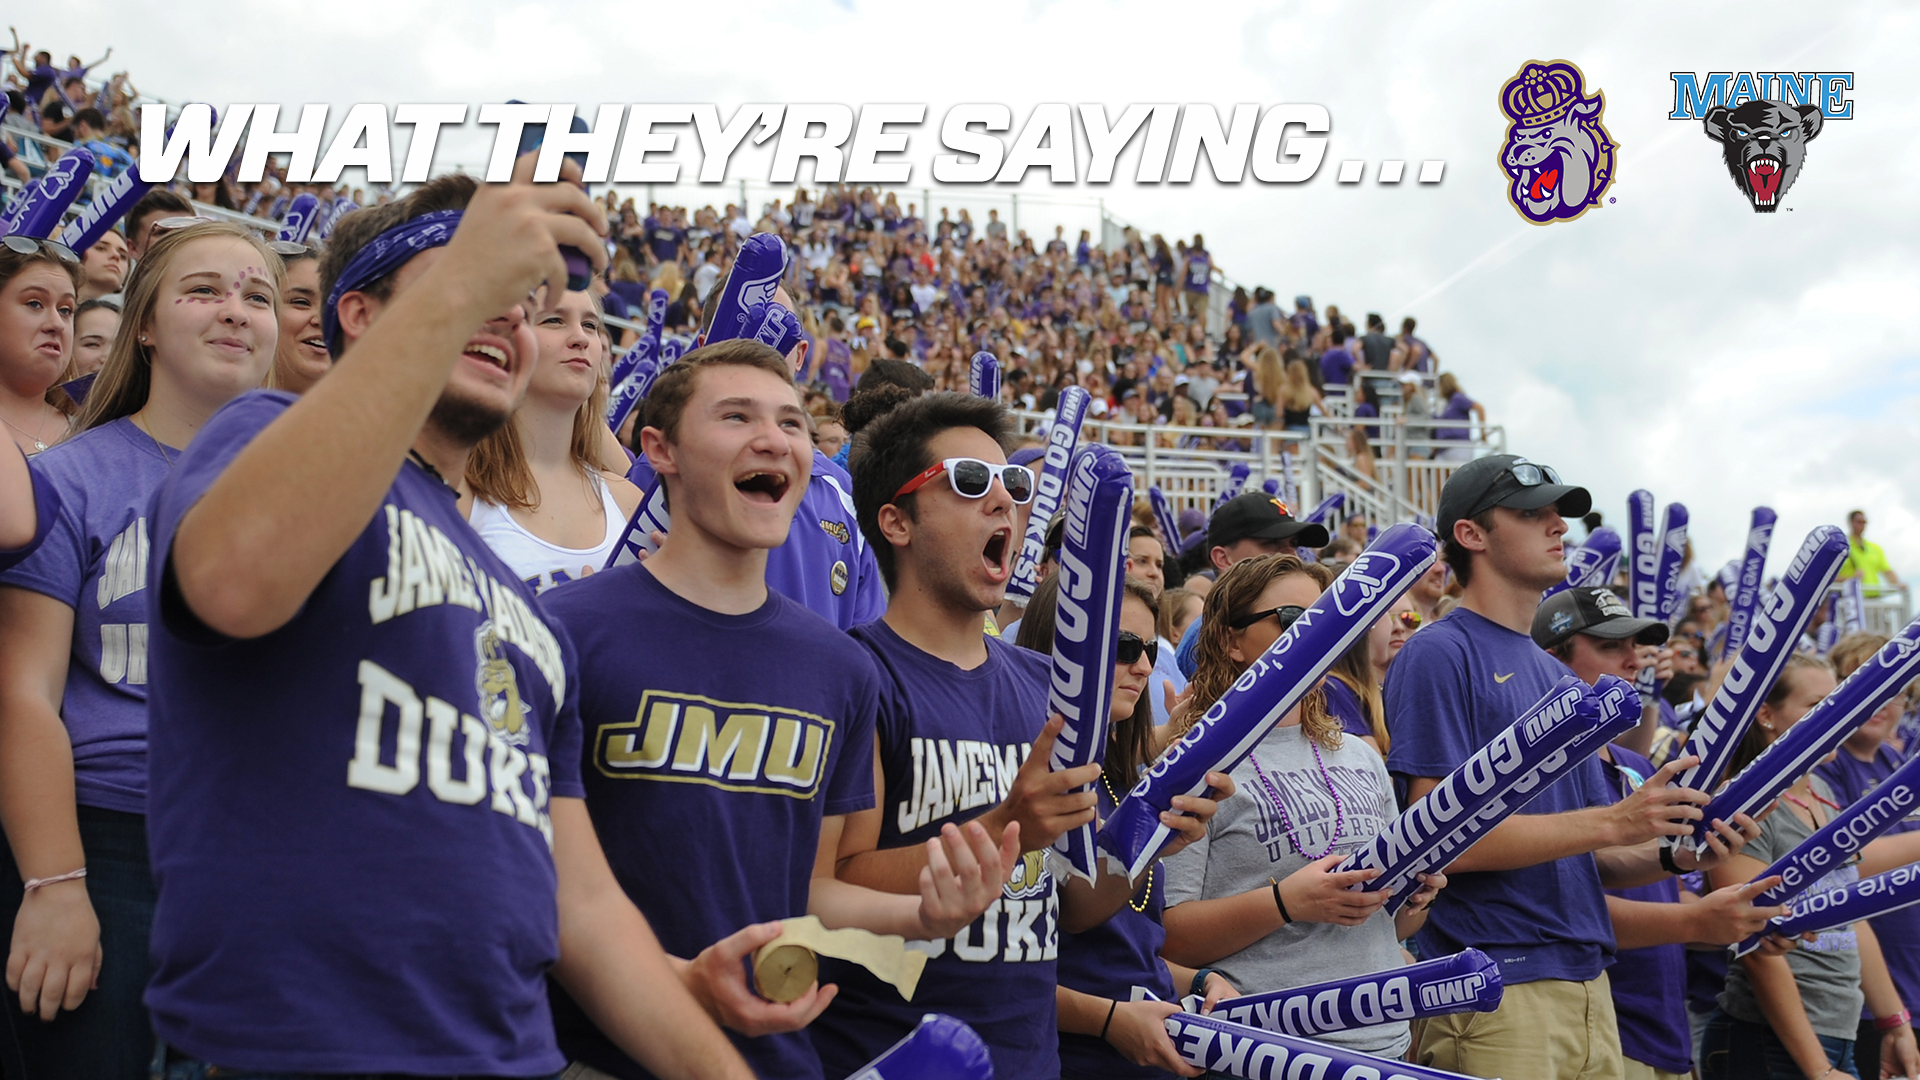 Football: What They're Saying: JMU vs. Maine)